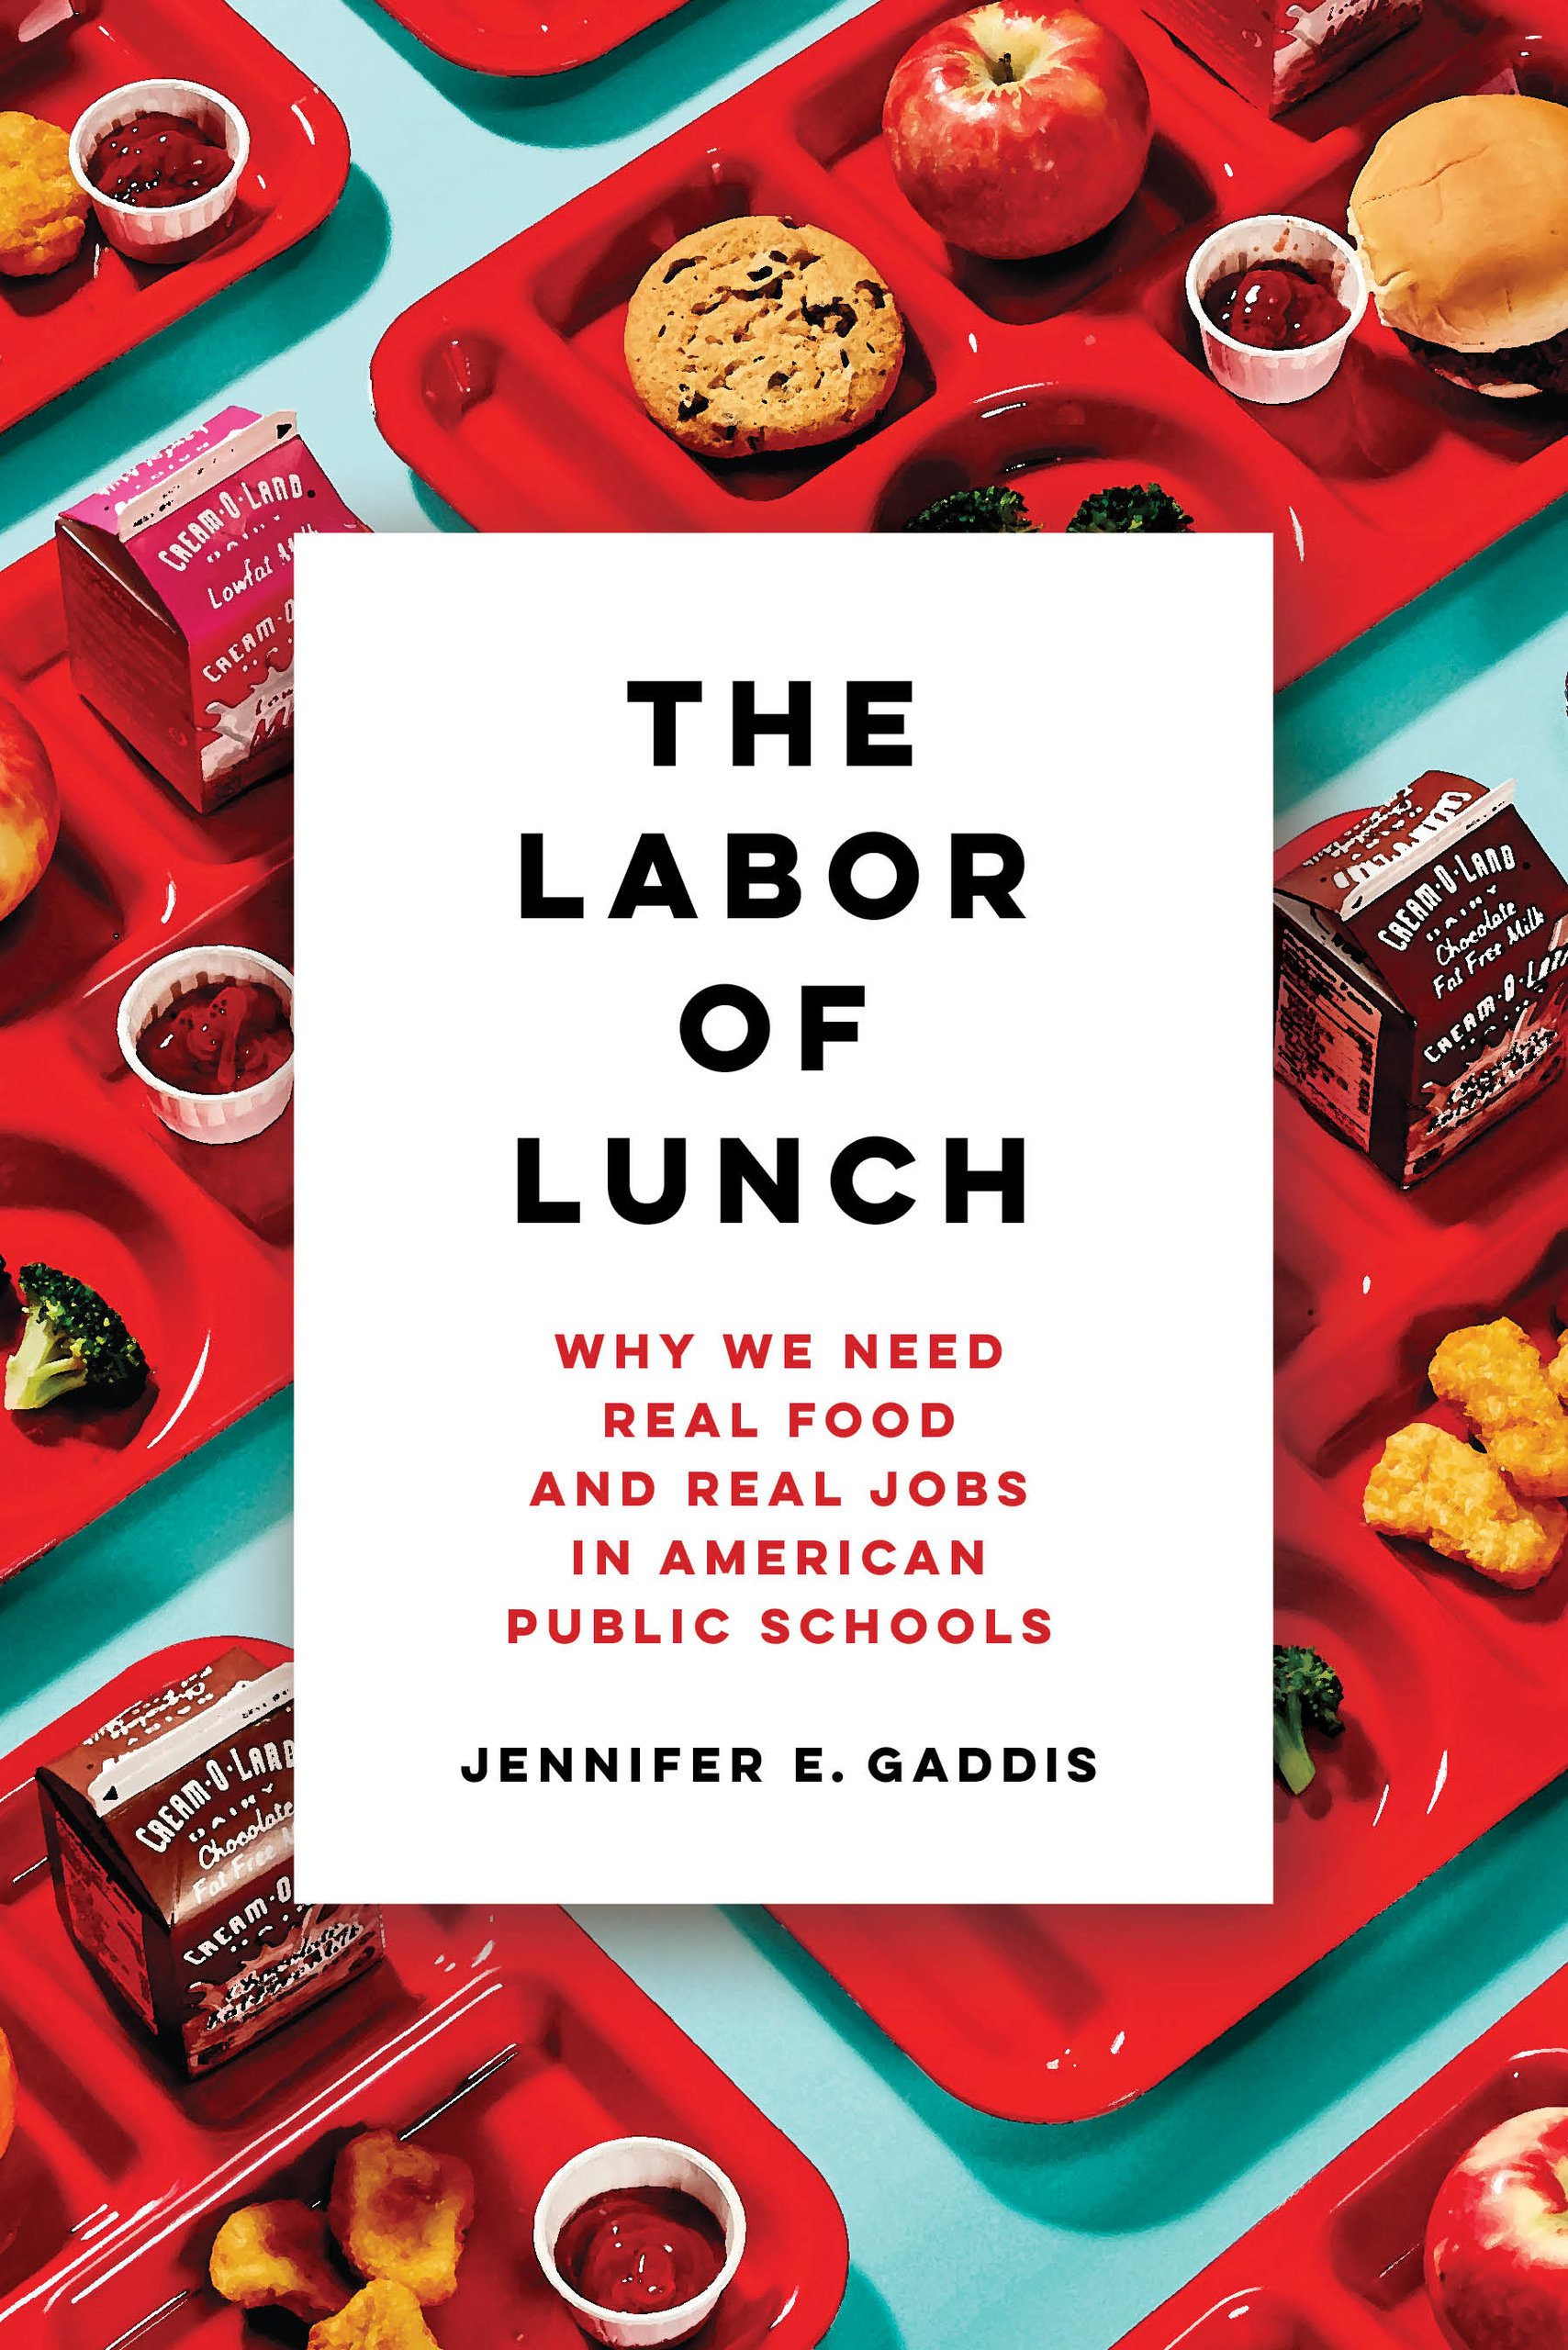 The Labor of Lunch: Why We Need Real Food and Real Jobs in American Public Schools